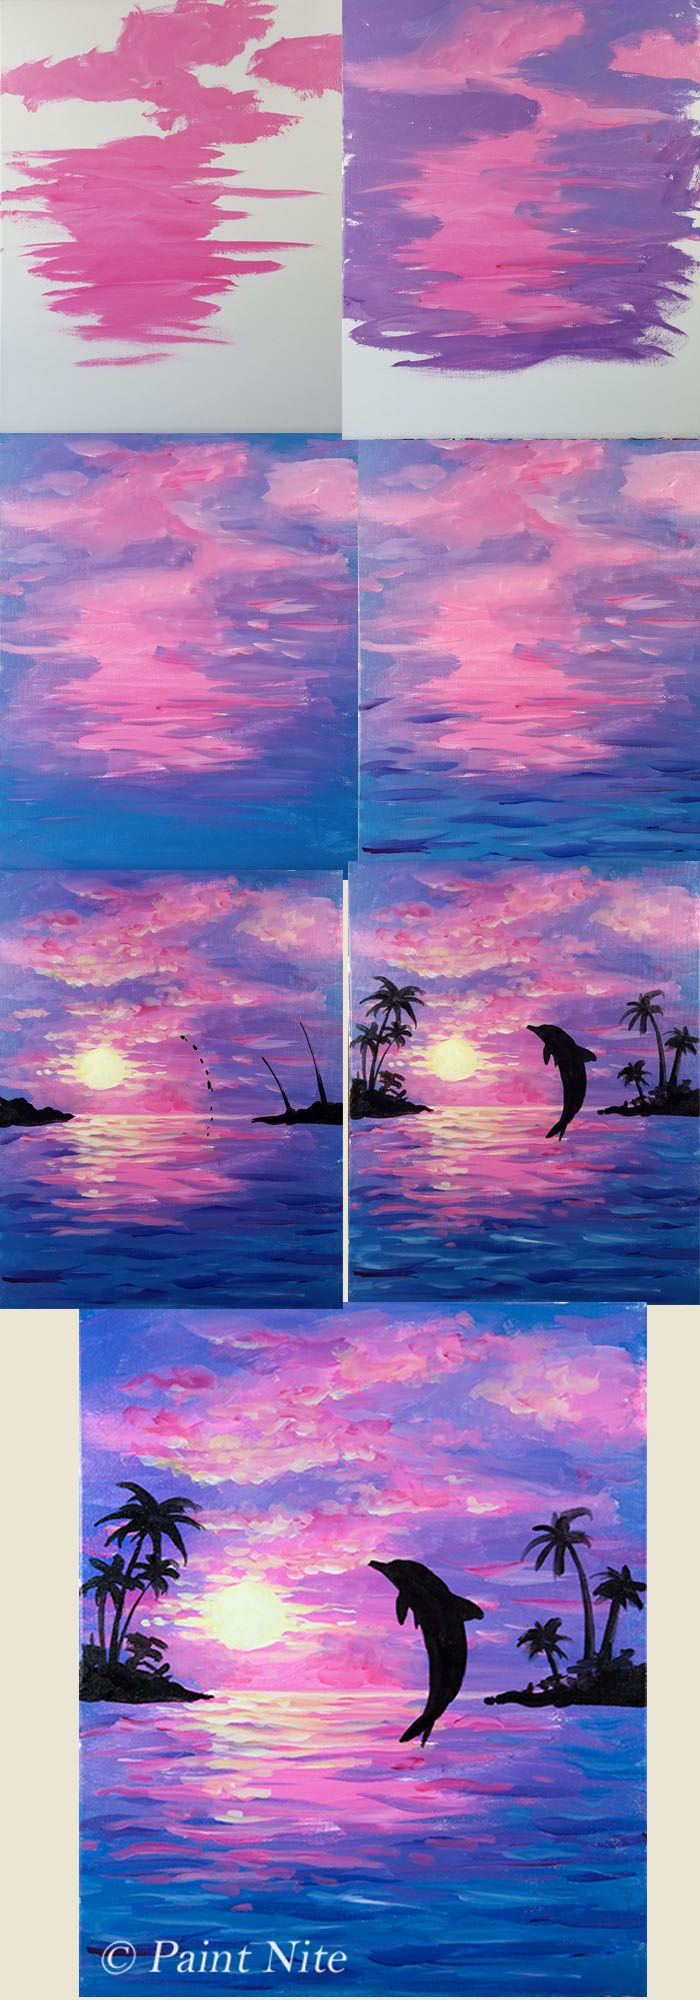 Best 25 watercolor sunset ideas on pinterest drawing for Watercolor scenes beginners